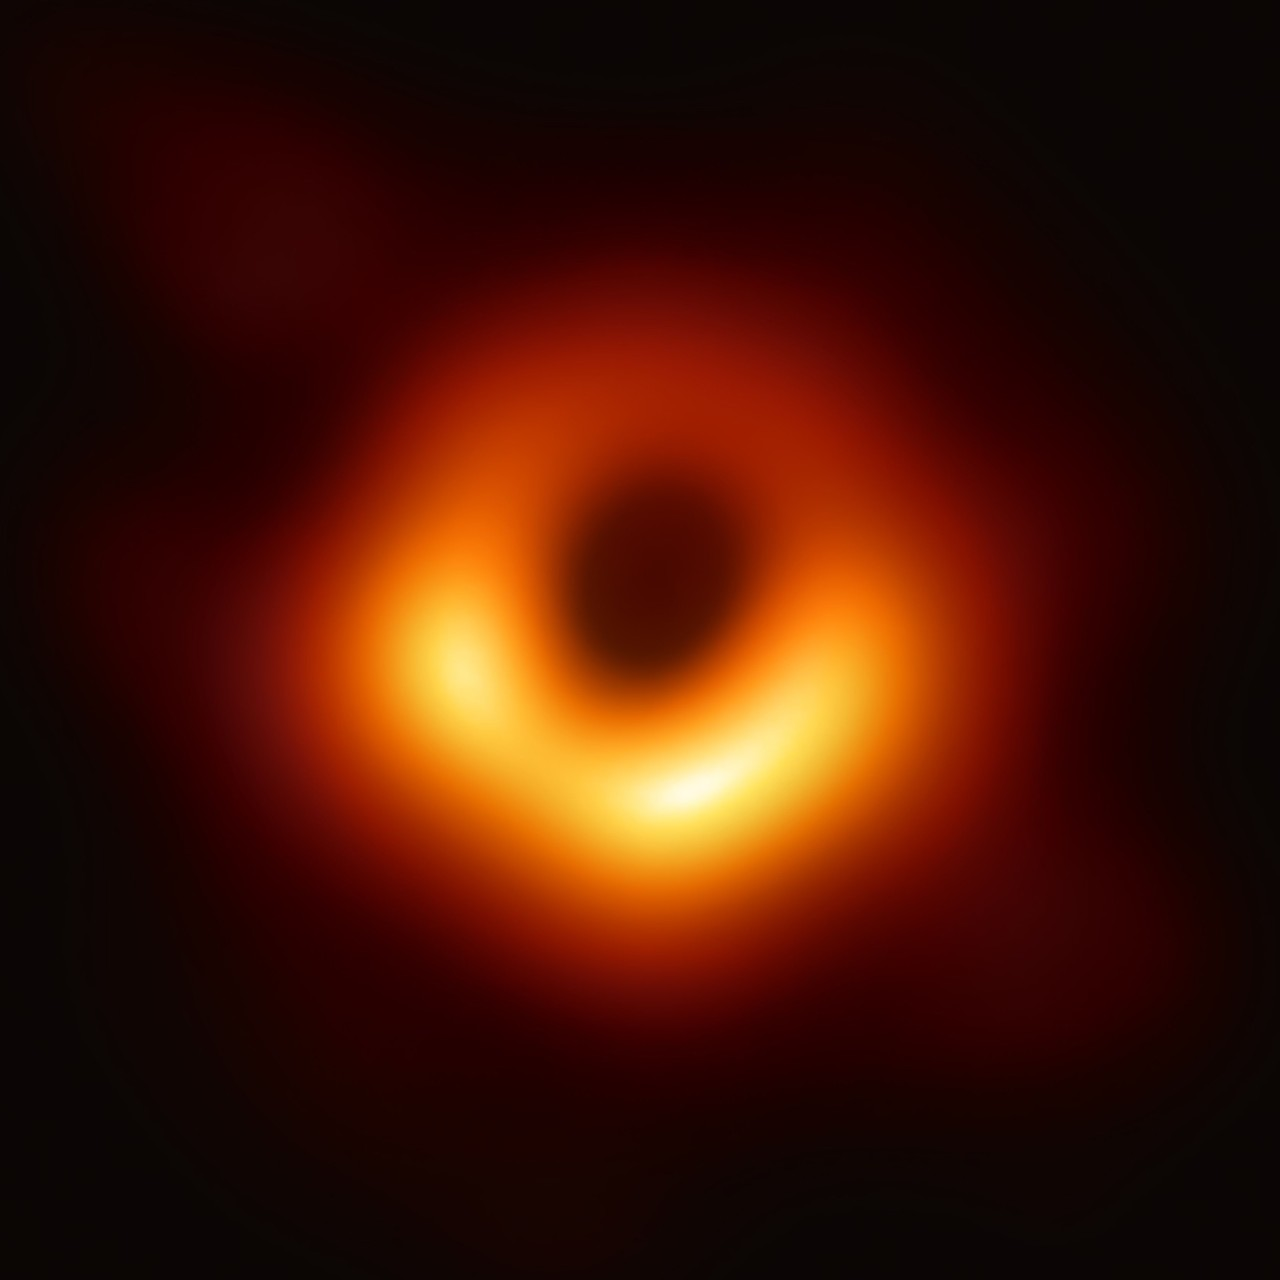 We're seeing the unseeable': Scientists reveal first true image of a